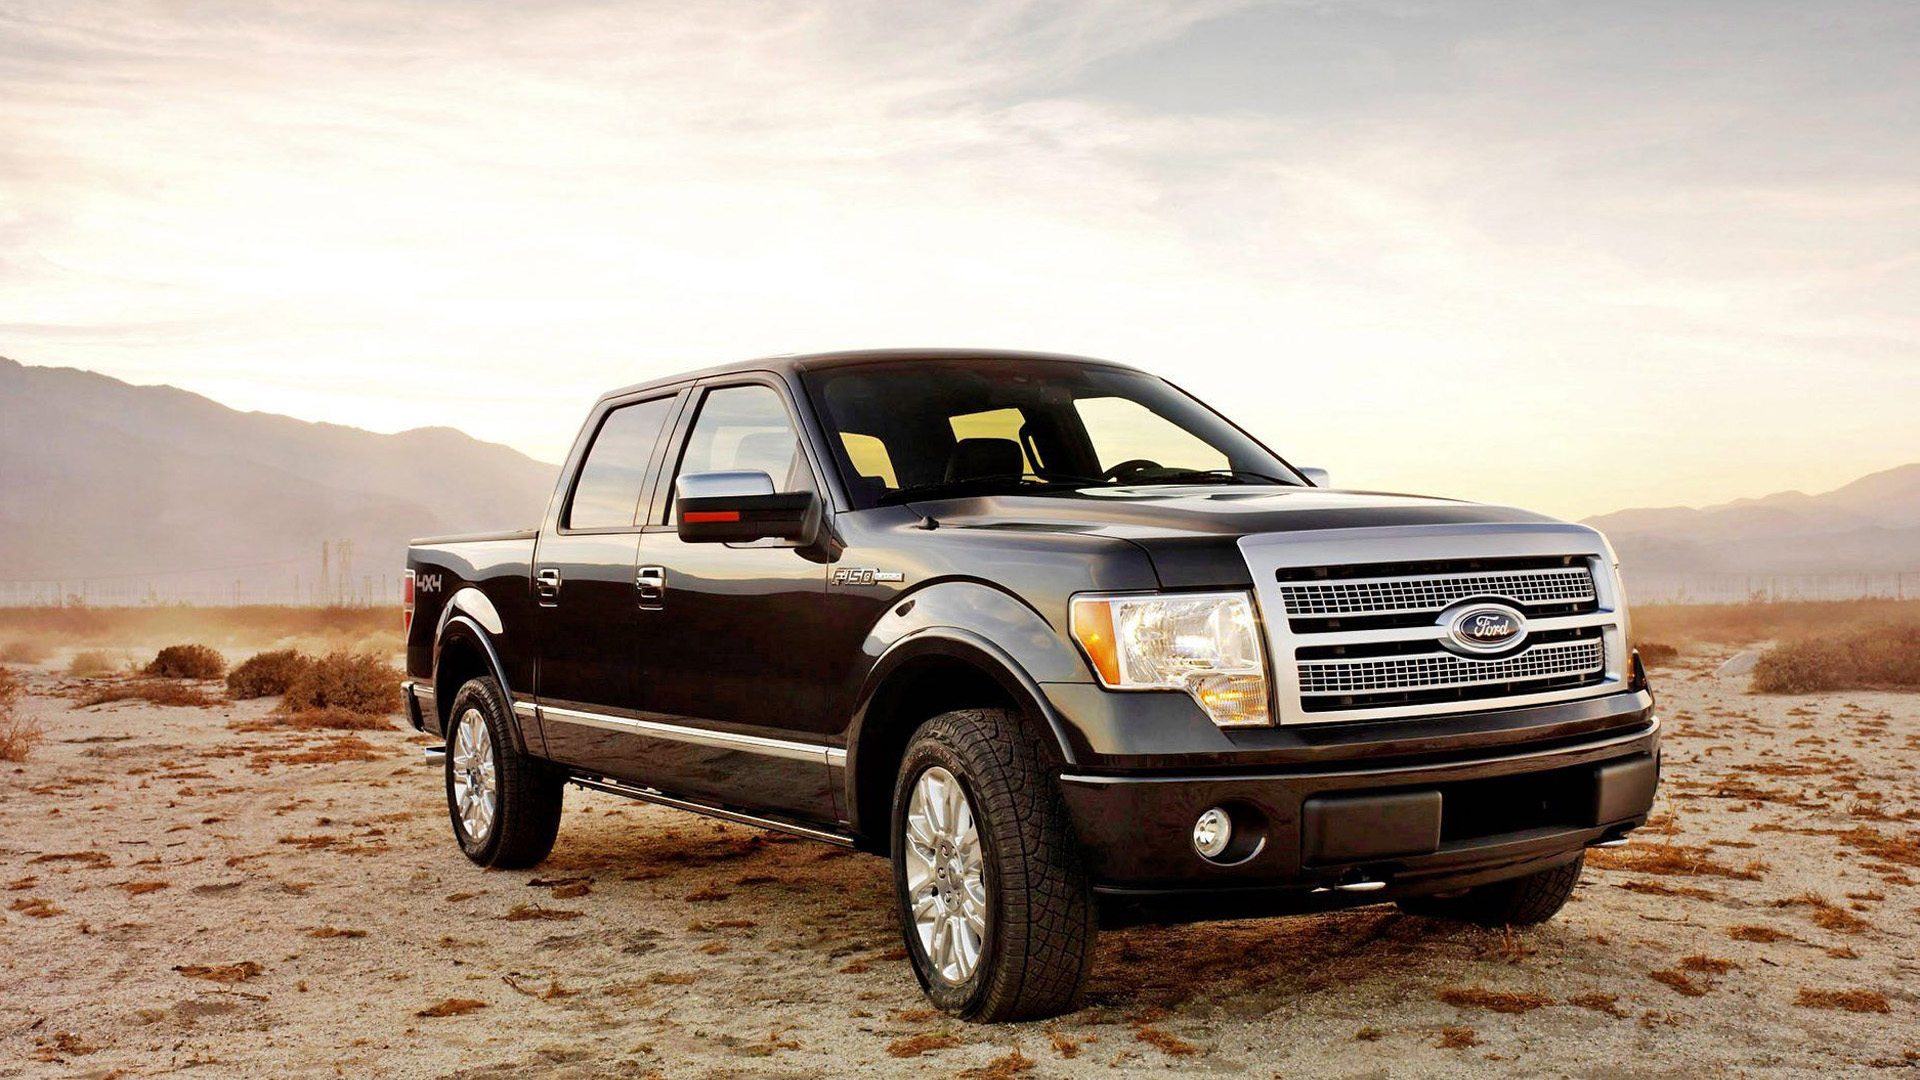 Car wallpapers  Ford F150Ford F150 Wallpaper